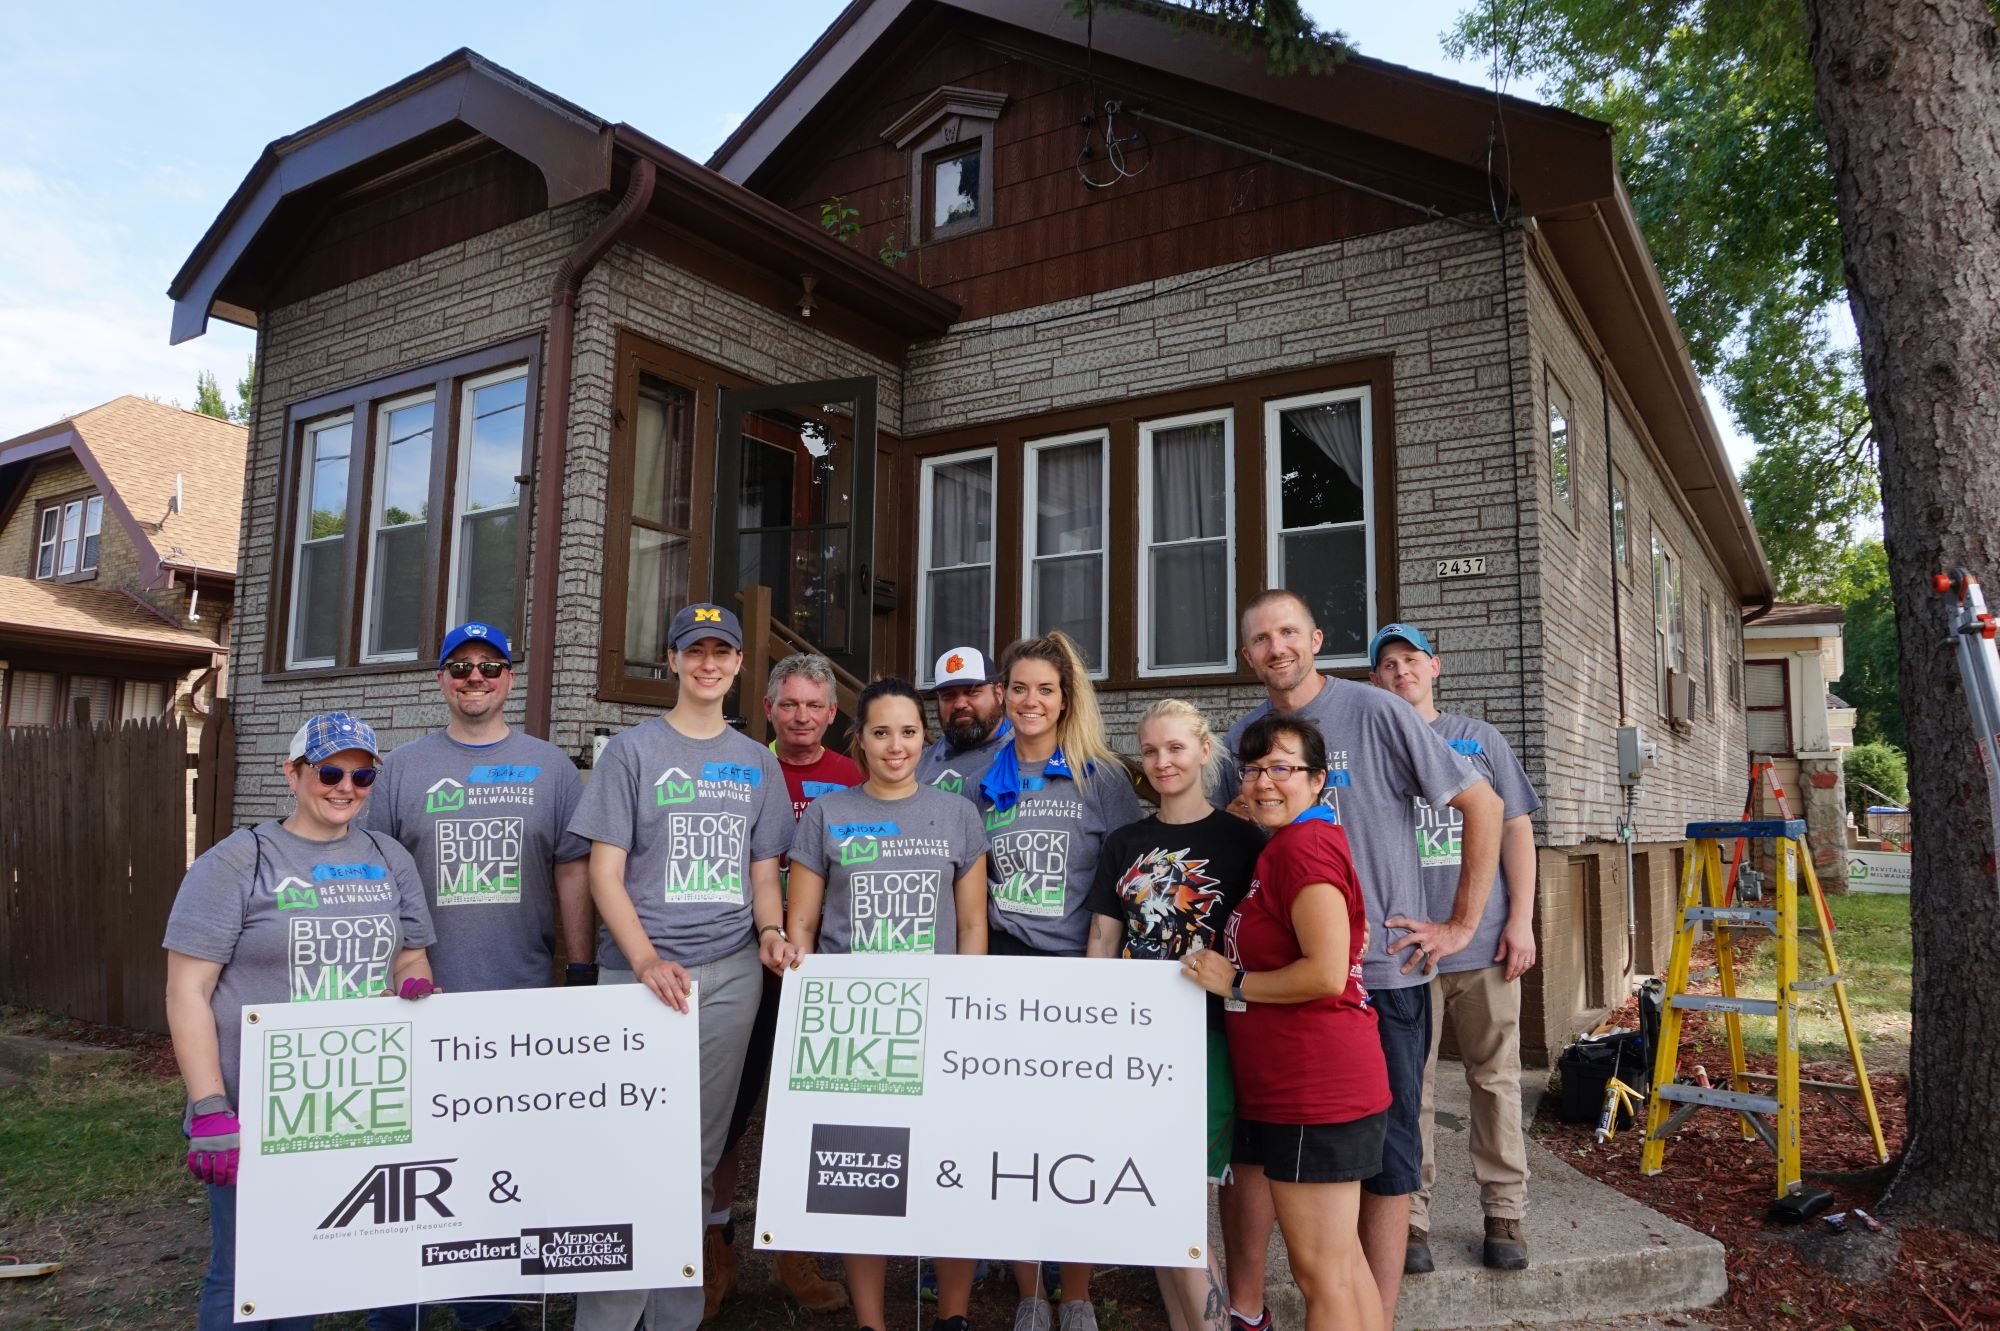 Volunteers in front of a house